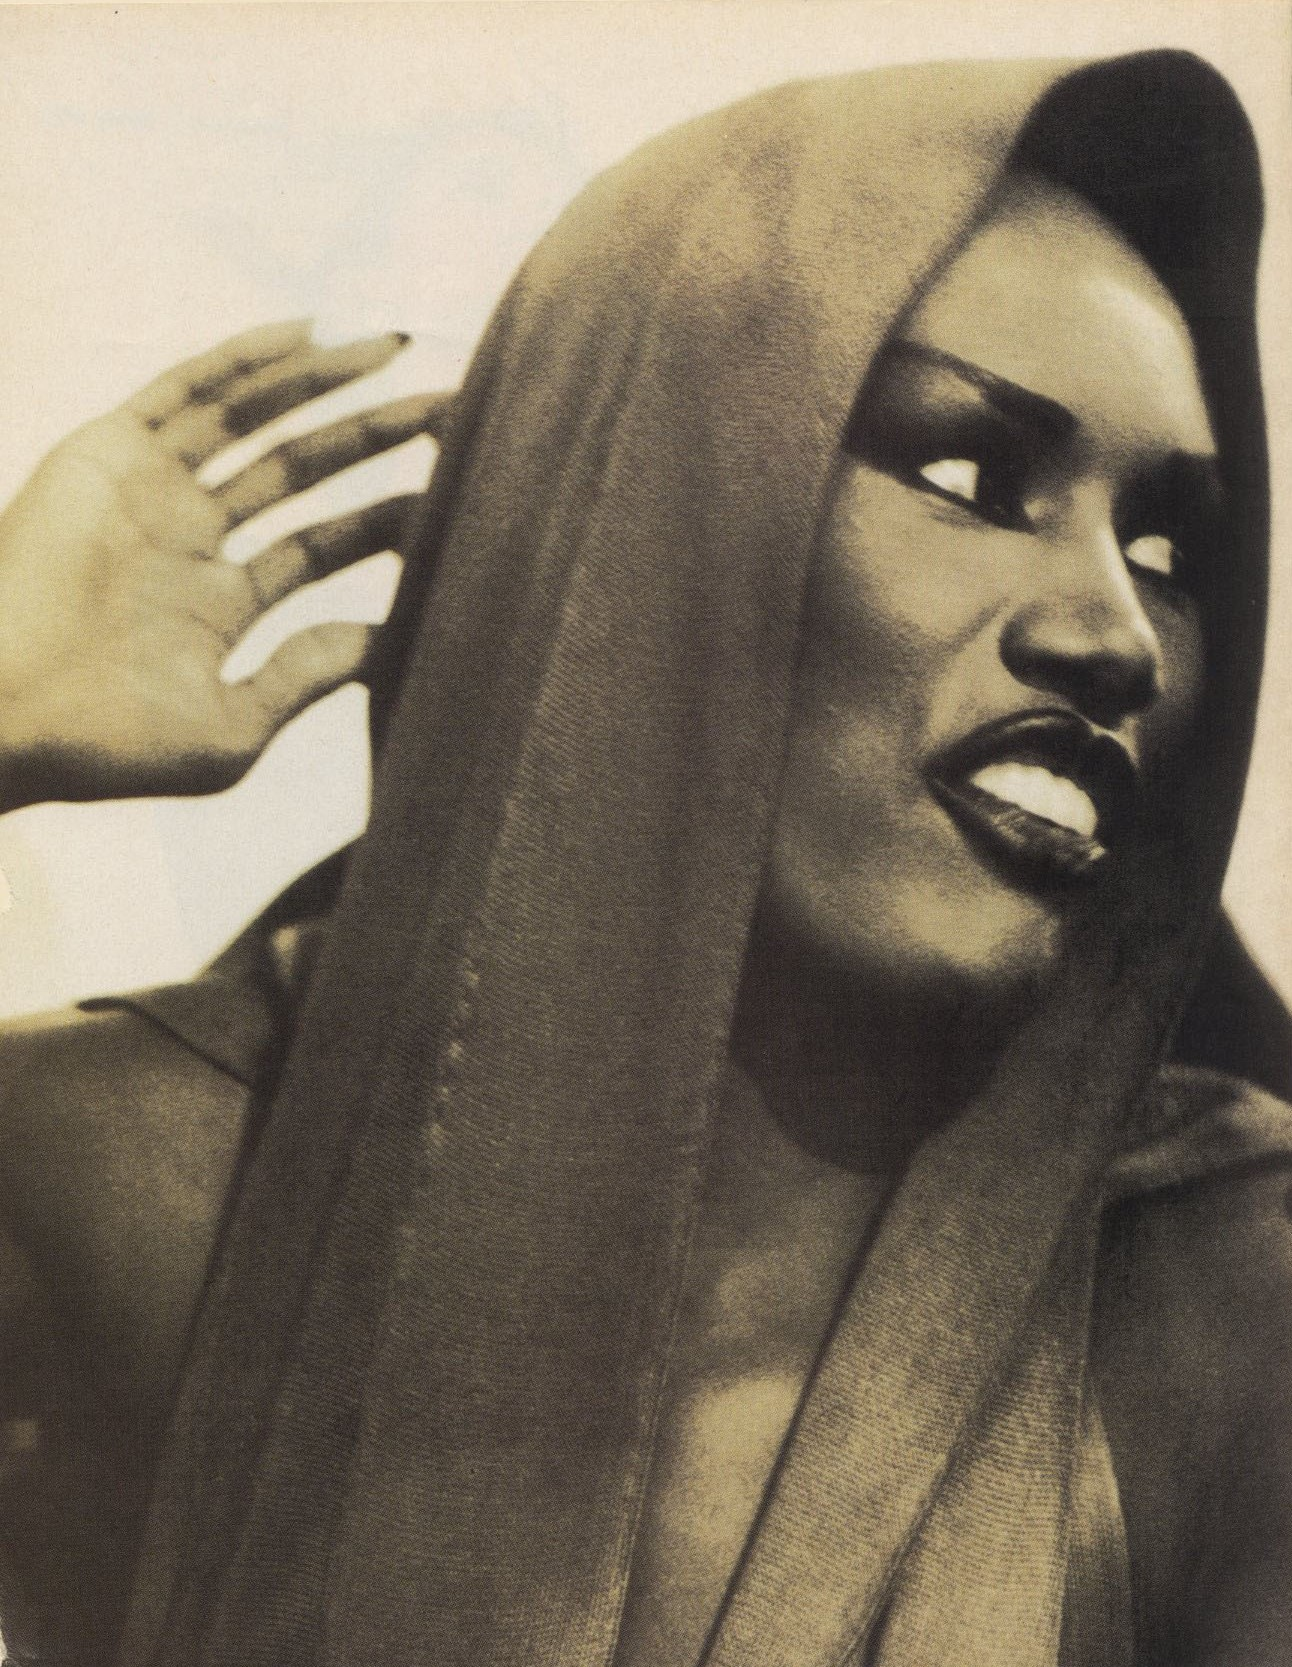 grace jones photography arthur elgort vogue italia december 1988